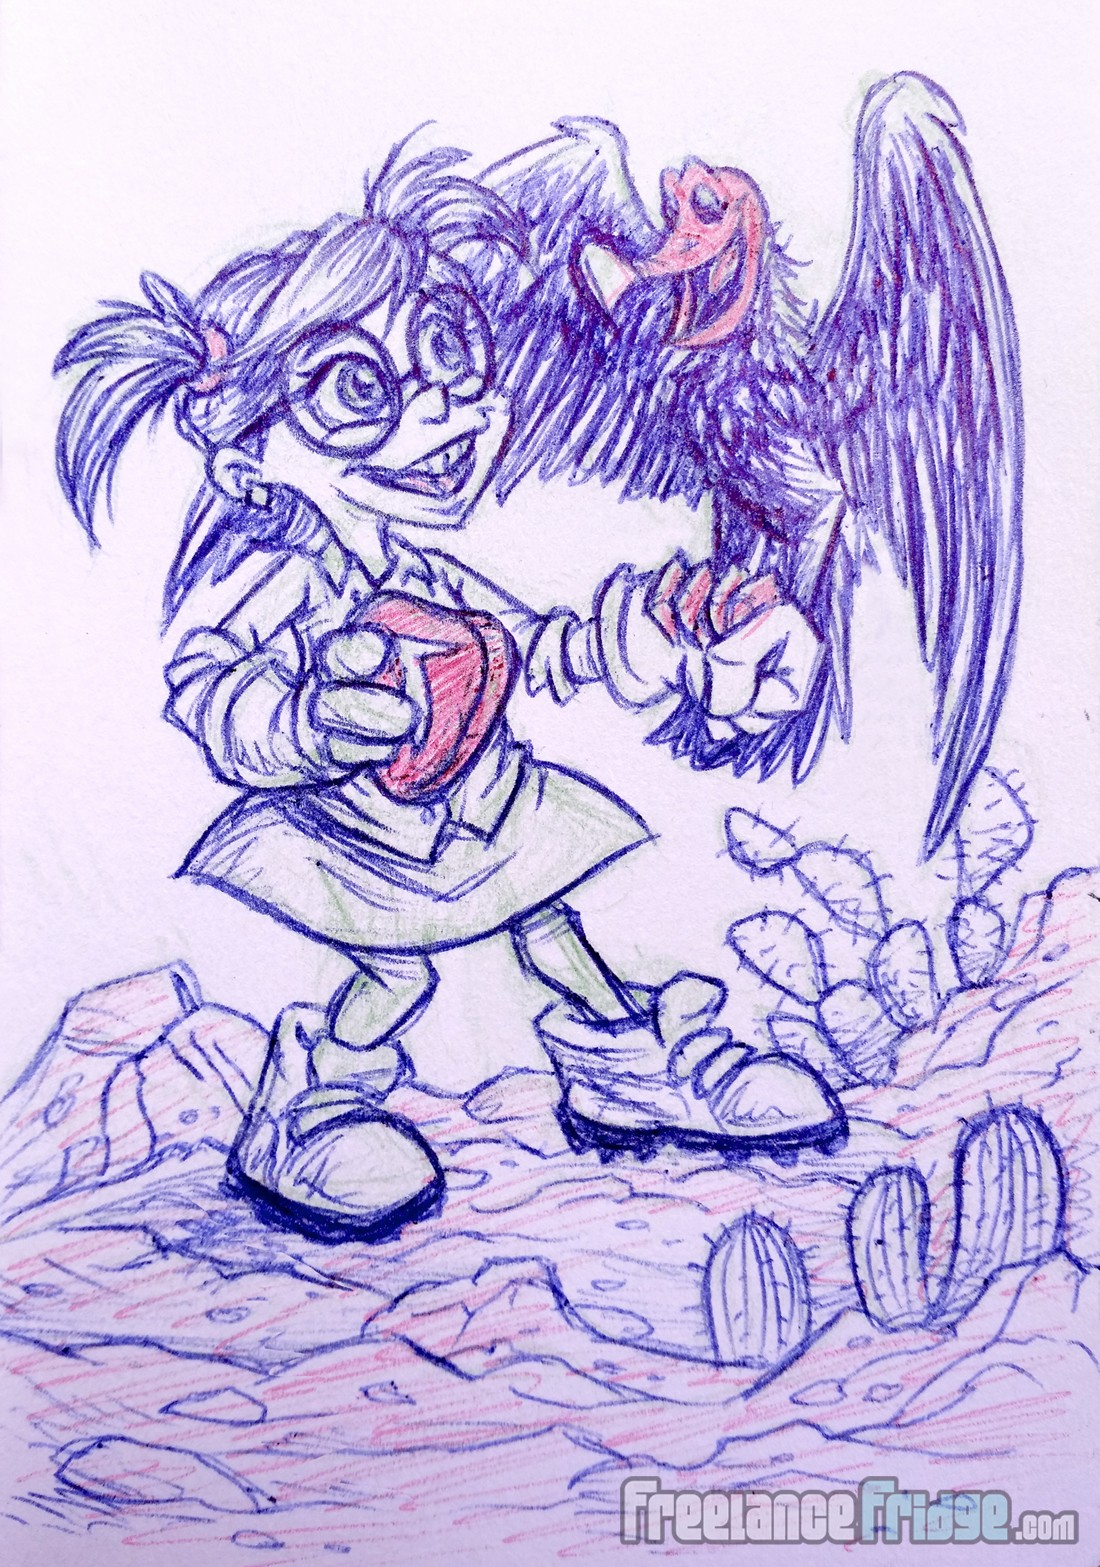 Cute Young Girl Character with Turkey Vulture Pet Cartoon Pencil and Ball Point Pen Sketch Drawing Illustration